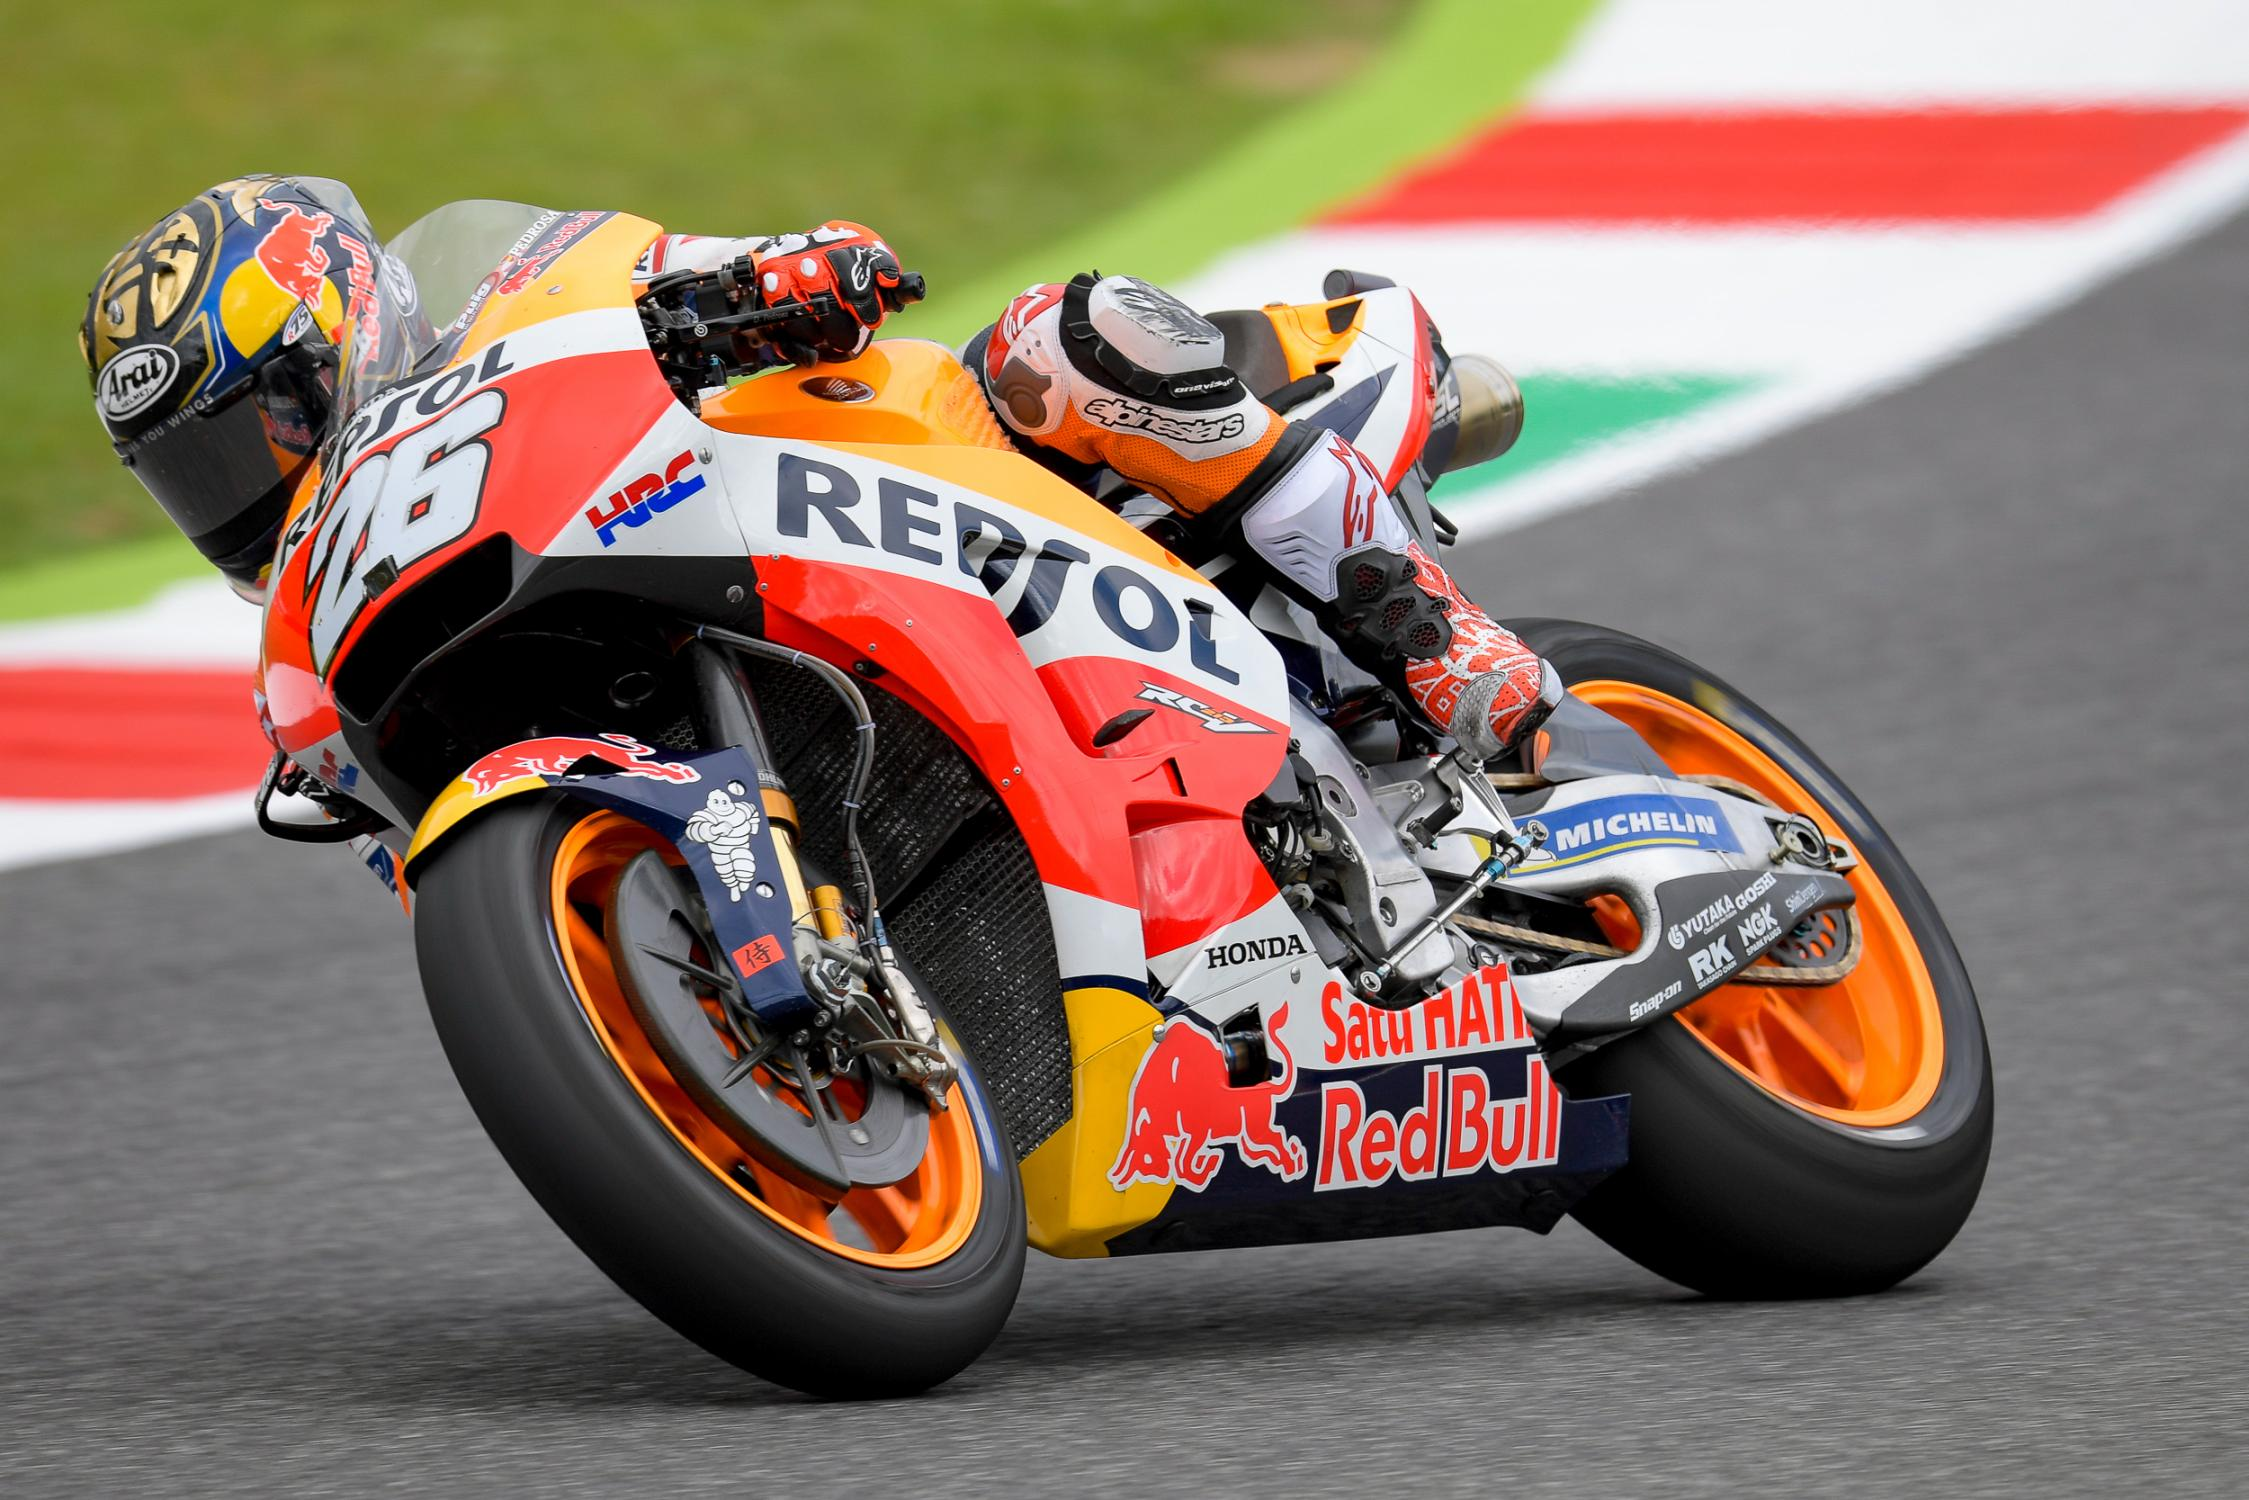 26-dani-pedrosa-esp_ds57548.gallery_full_top_fullscreen.jpg